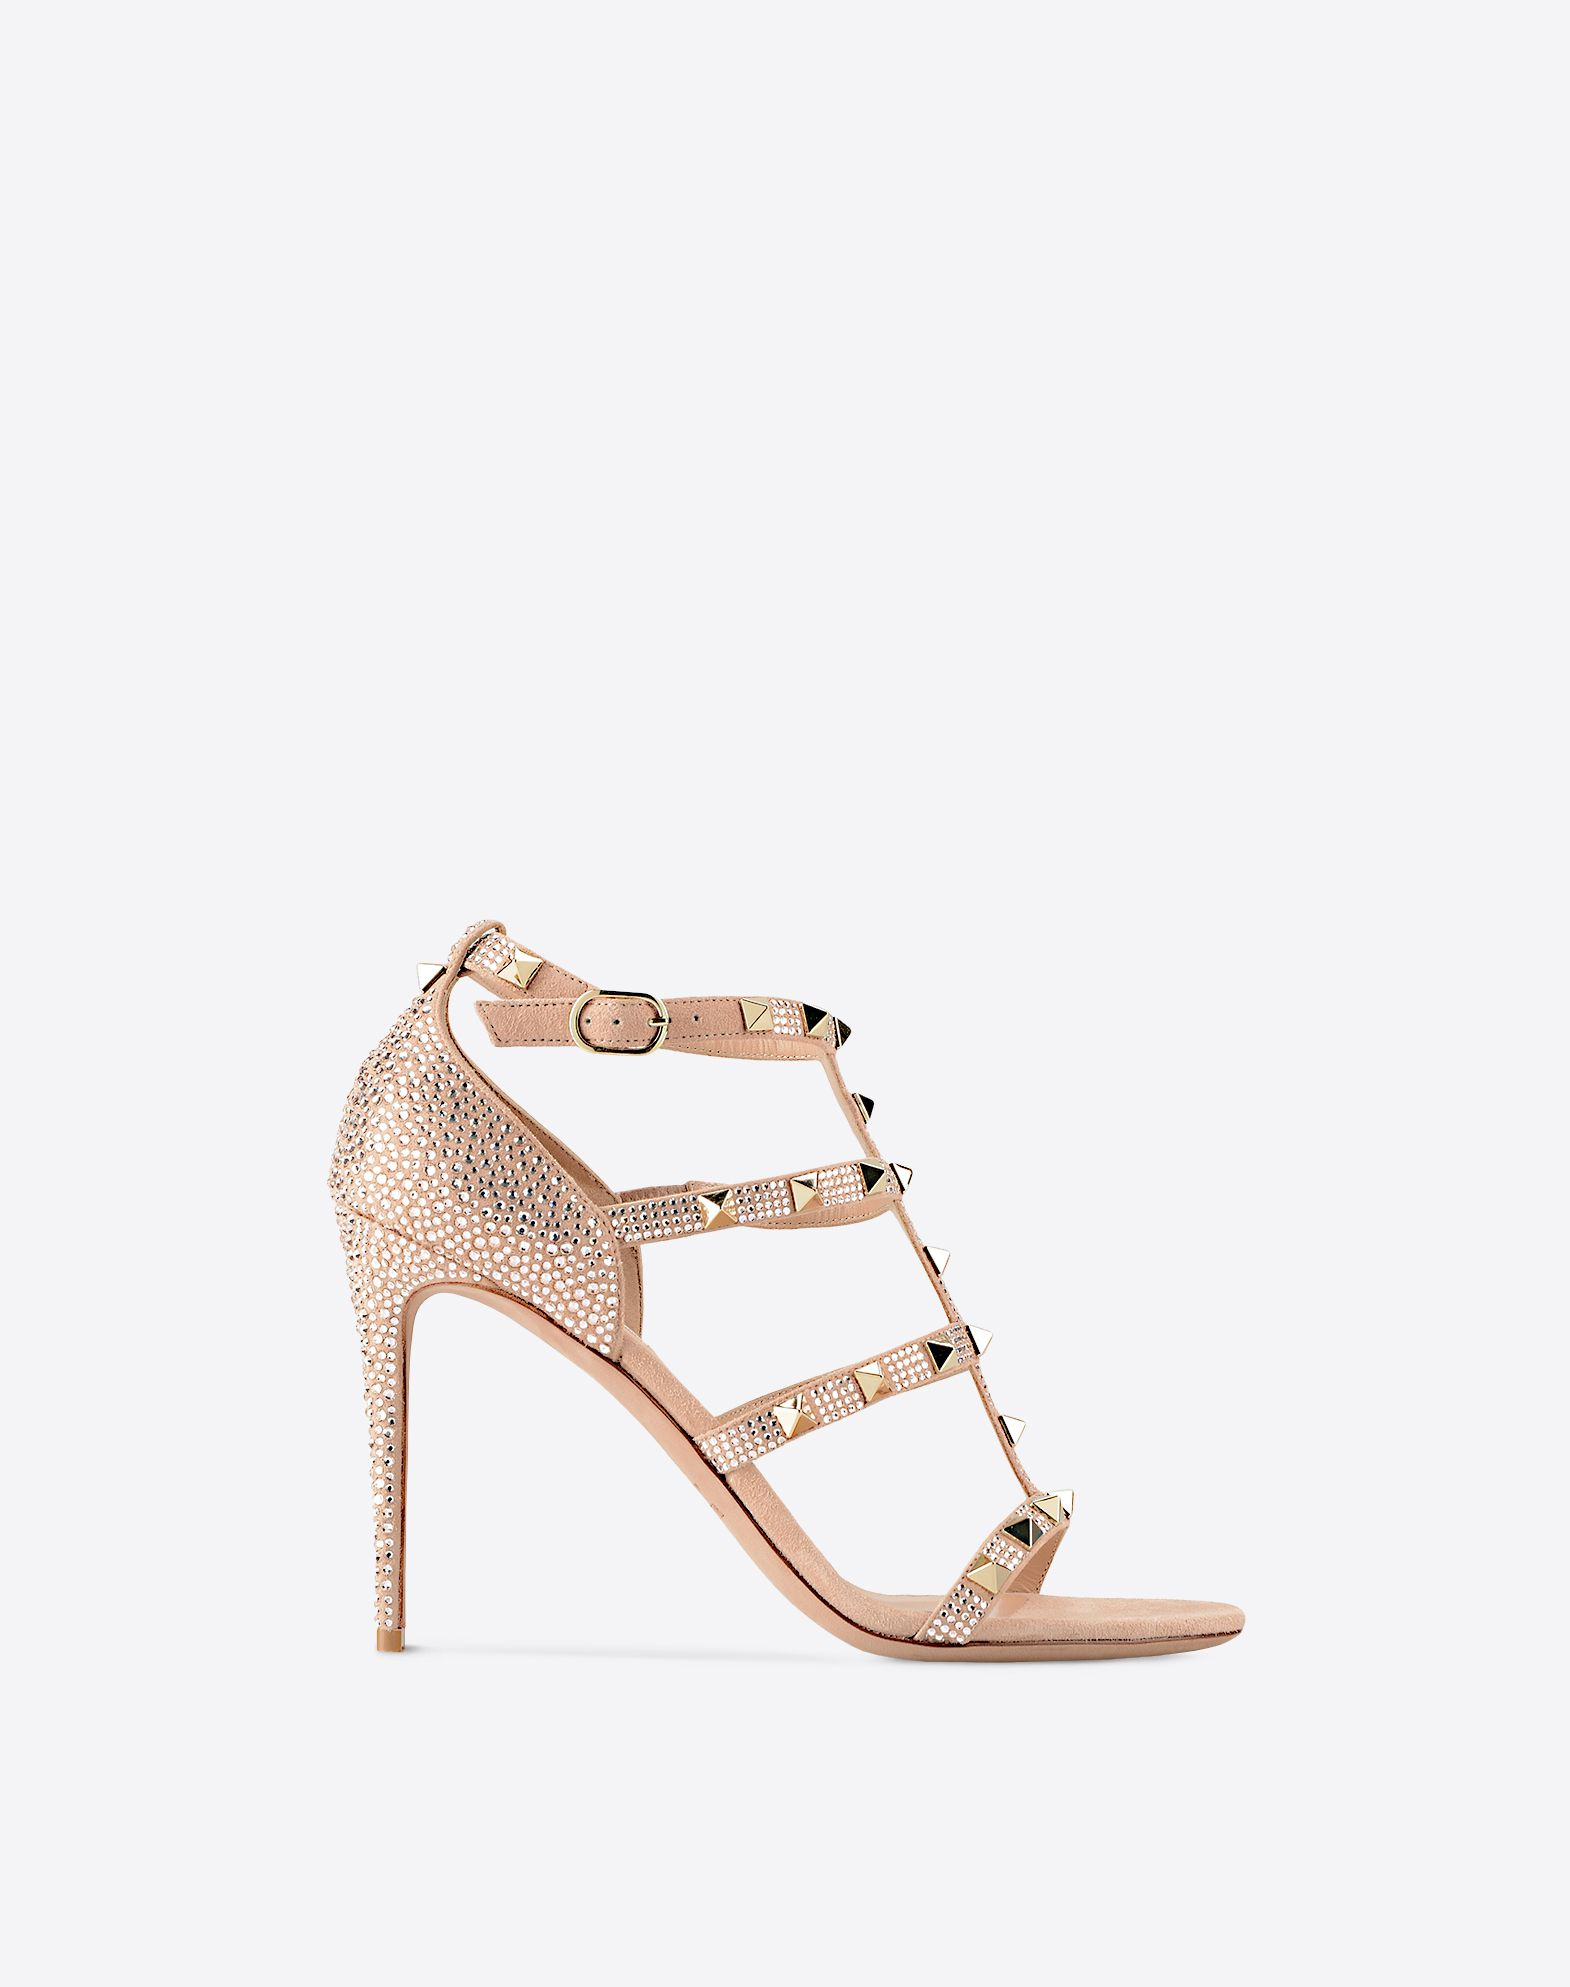 VALENTINO Metal Applications Solid colour Buckling ankle strap closure  11149756pj